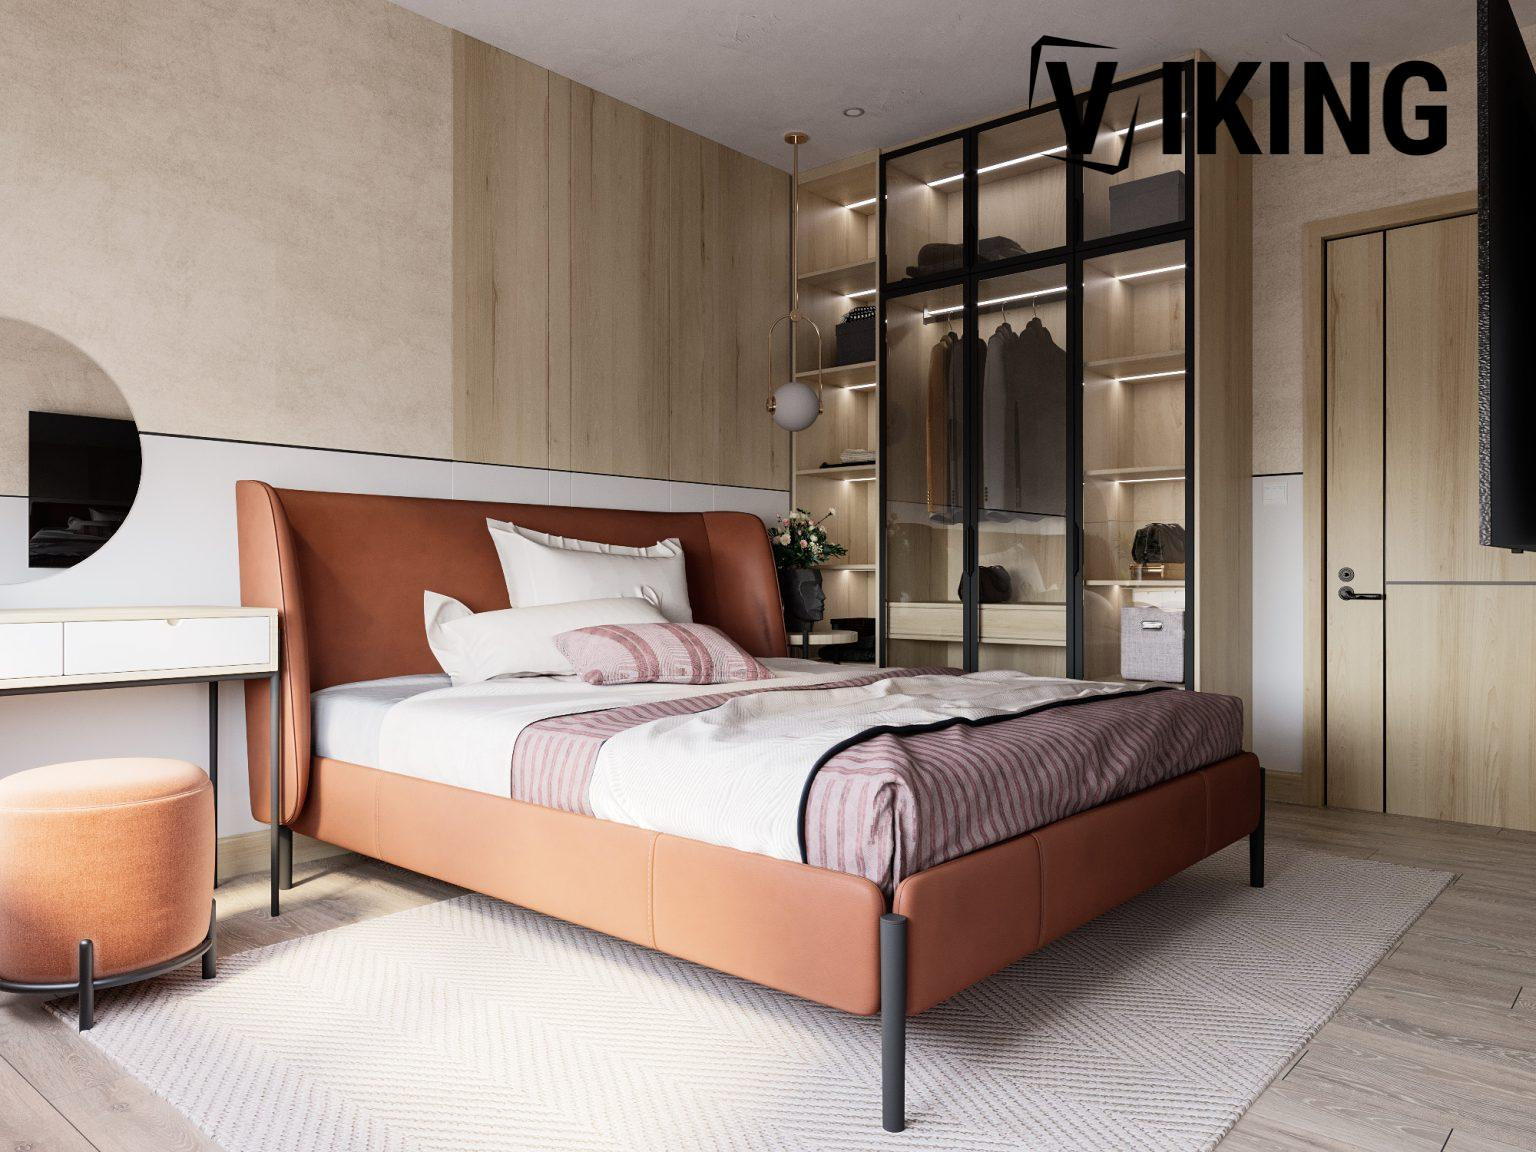 3503.Bedroom Scene 3dsmax File free download by Tuan An 3 1536x1152 1